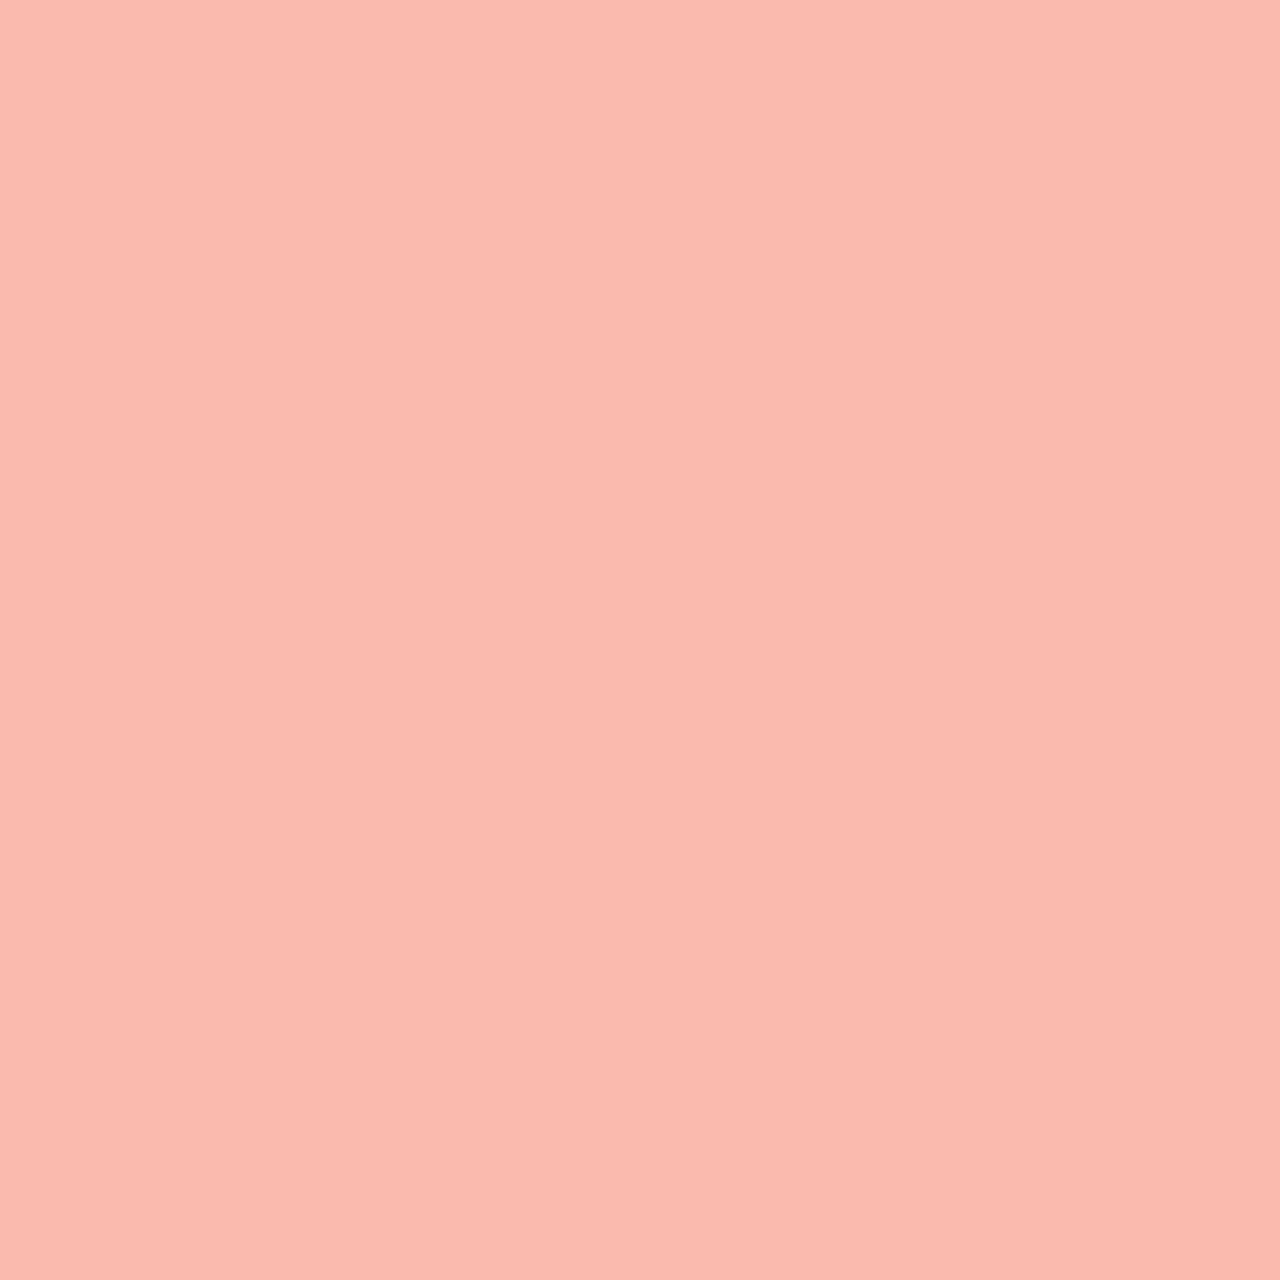 #0305 Rosco Gels Roscolux Rose Gold, 20x24""